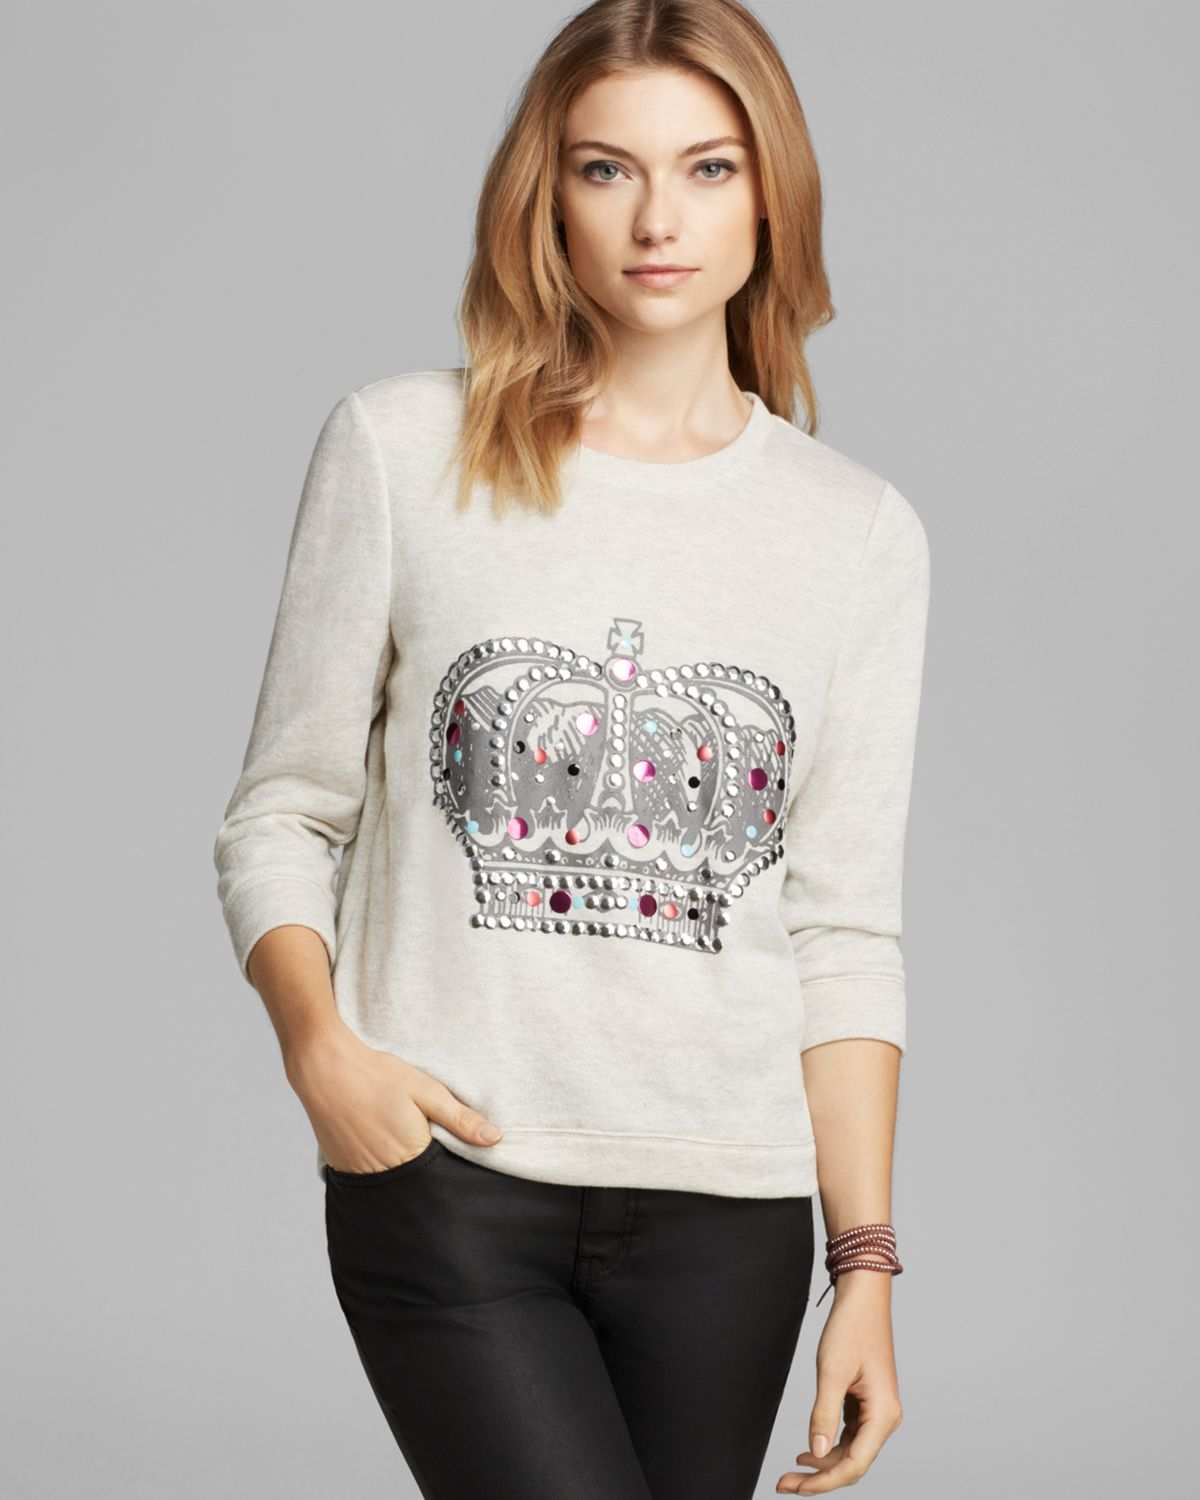 Aqua Sweatshirt - Jeweled Crown Crop | Bloomingdale's